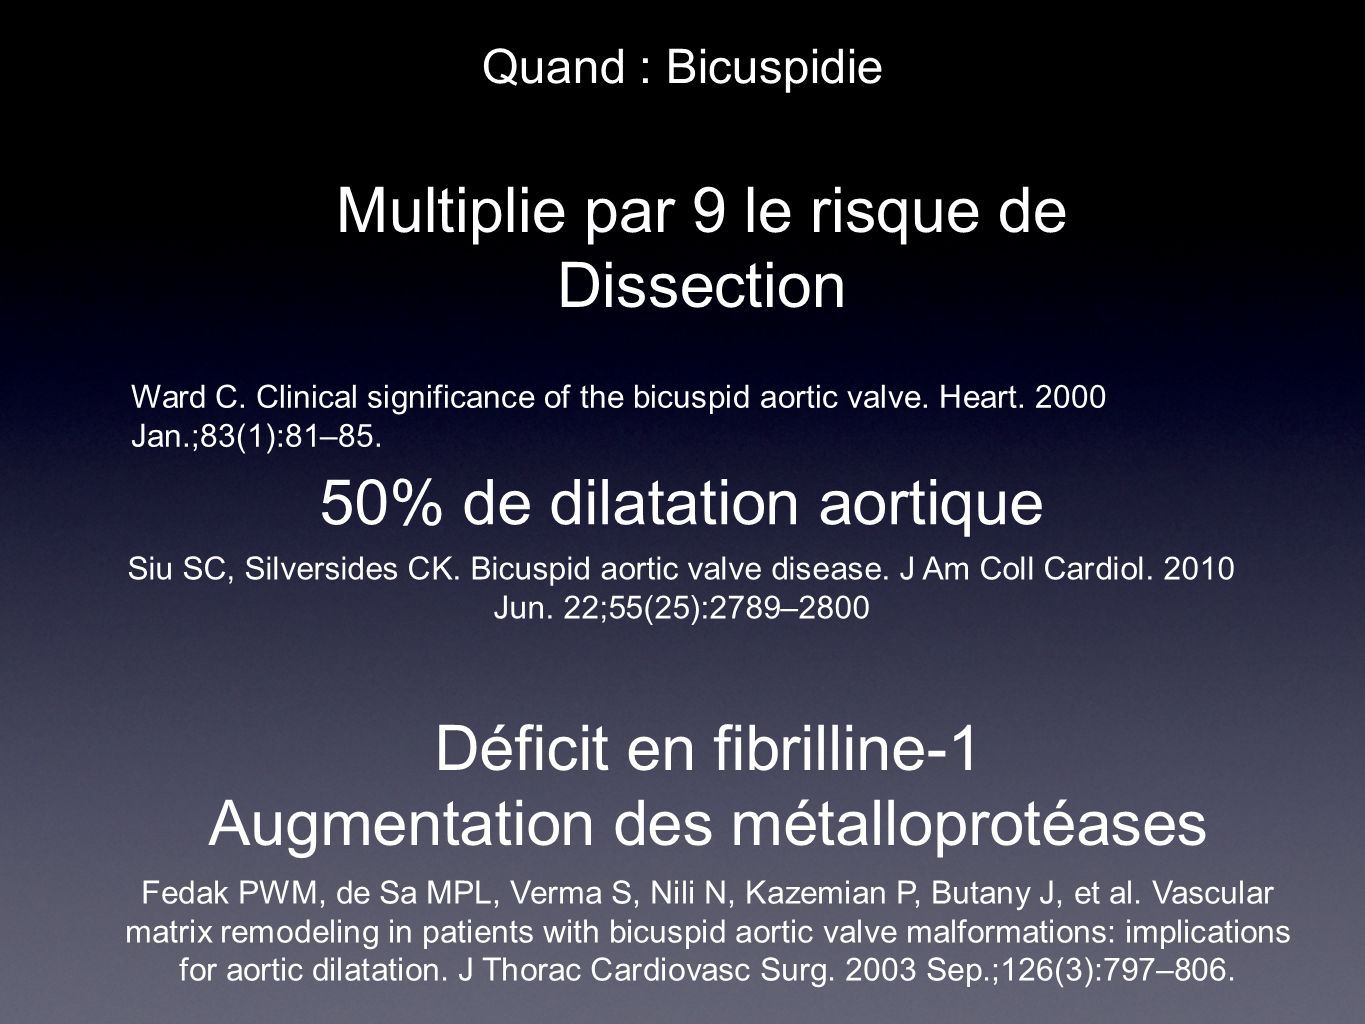 Multiplie par 9 le risque de Dissection